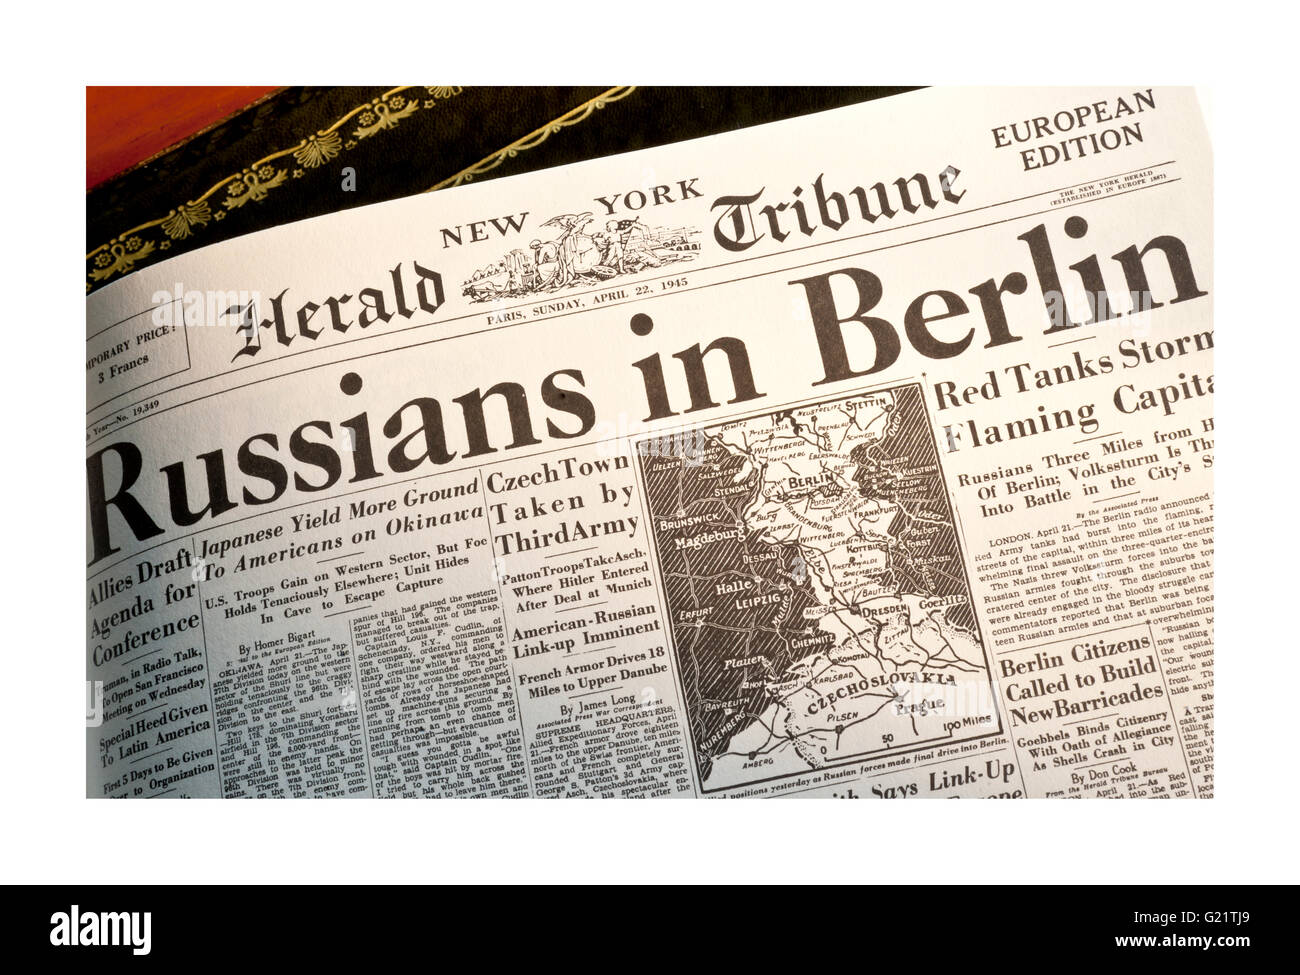 Herald Tribune Sunday April 22 1945 Headline 'Russians in Berlin' - Stock Image